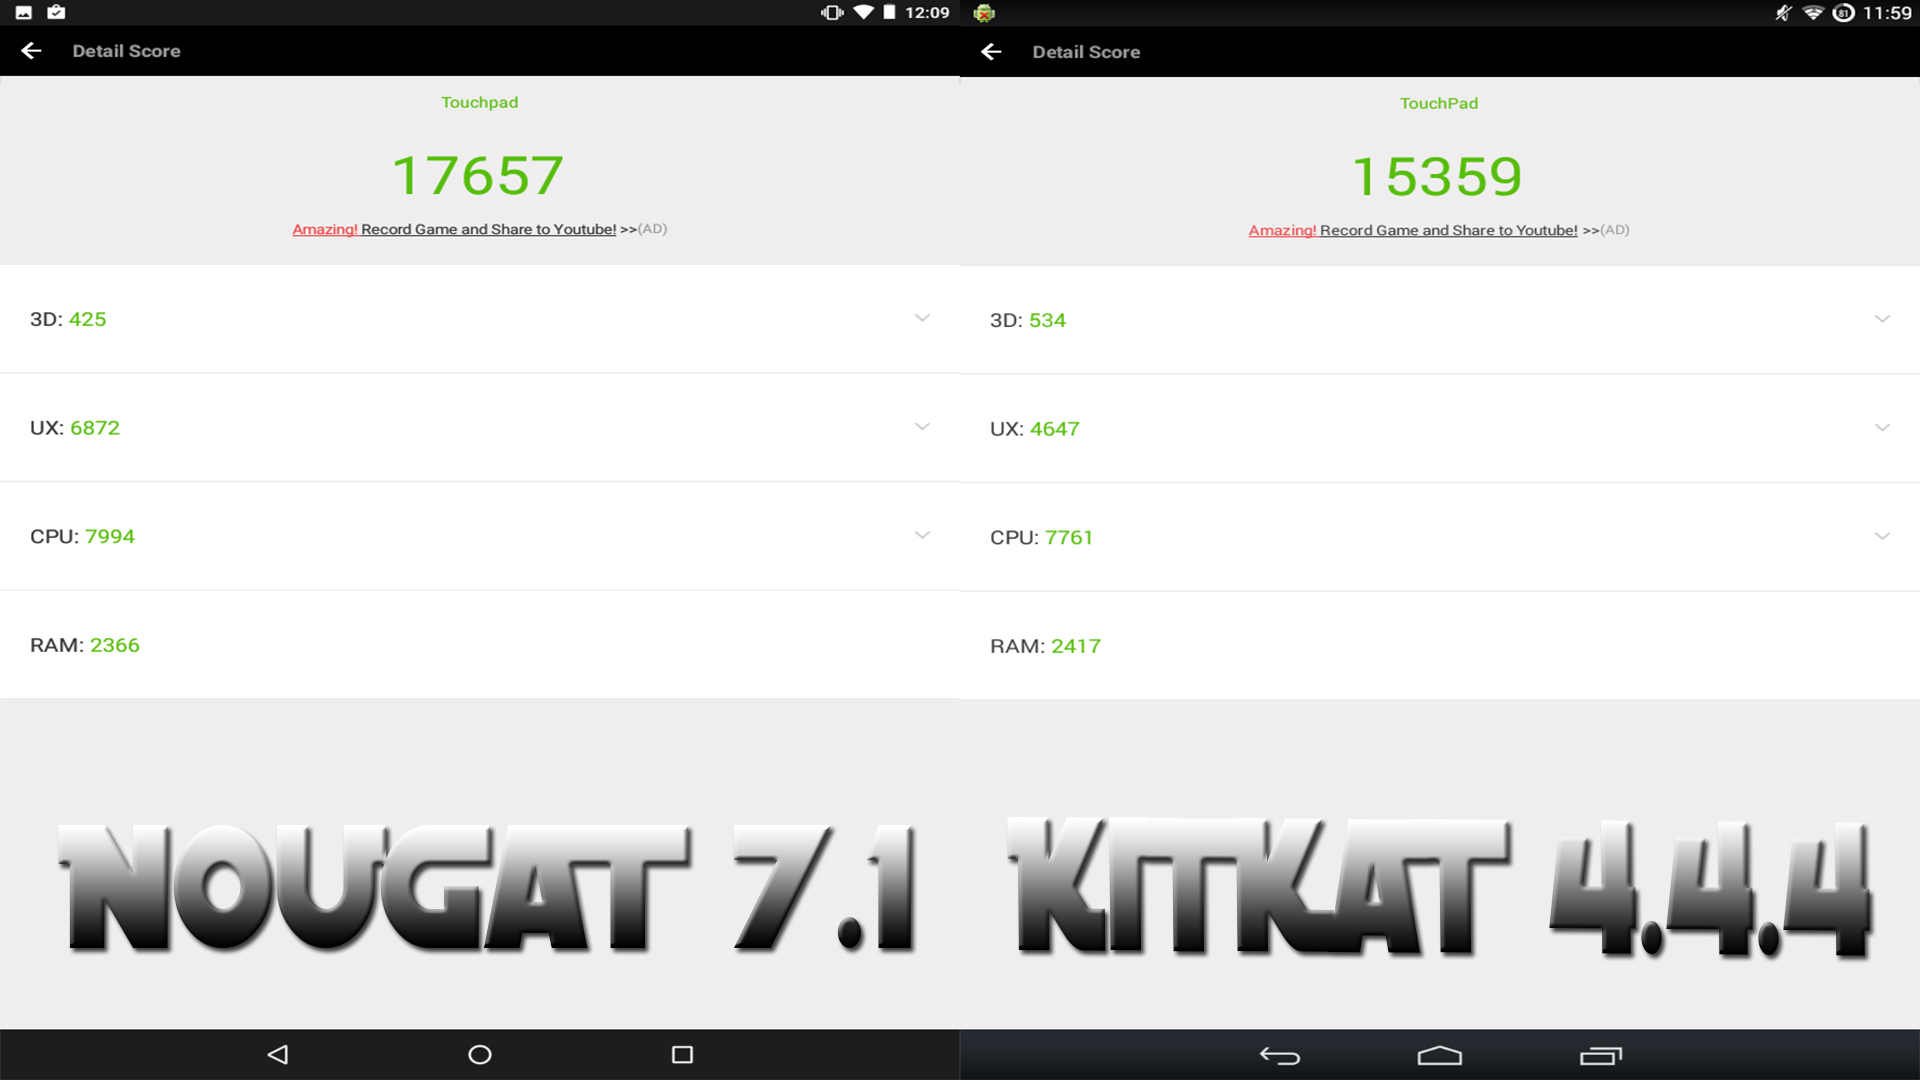 Click image for larger version  Name:7.1vs4.4.4android.jpg Views:2138 Size:215.5 KB ID:3958110